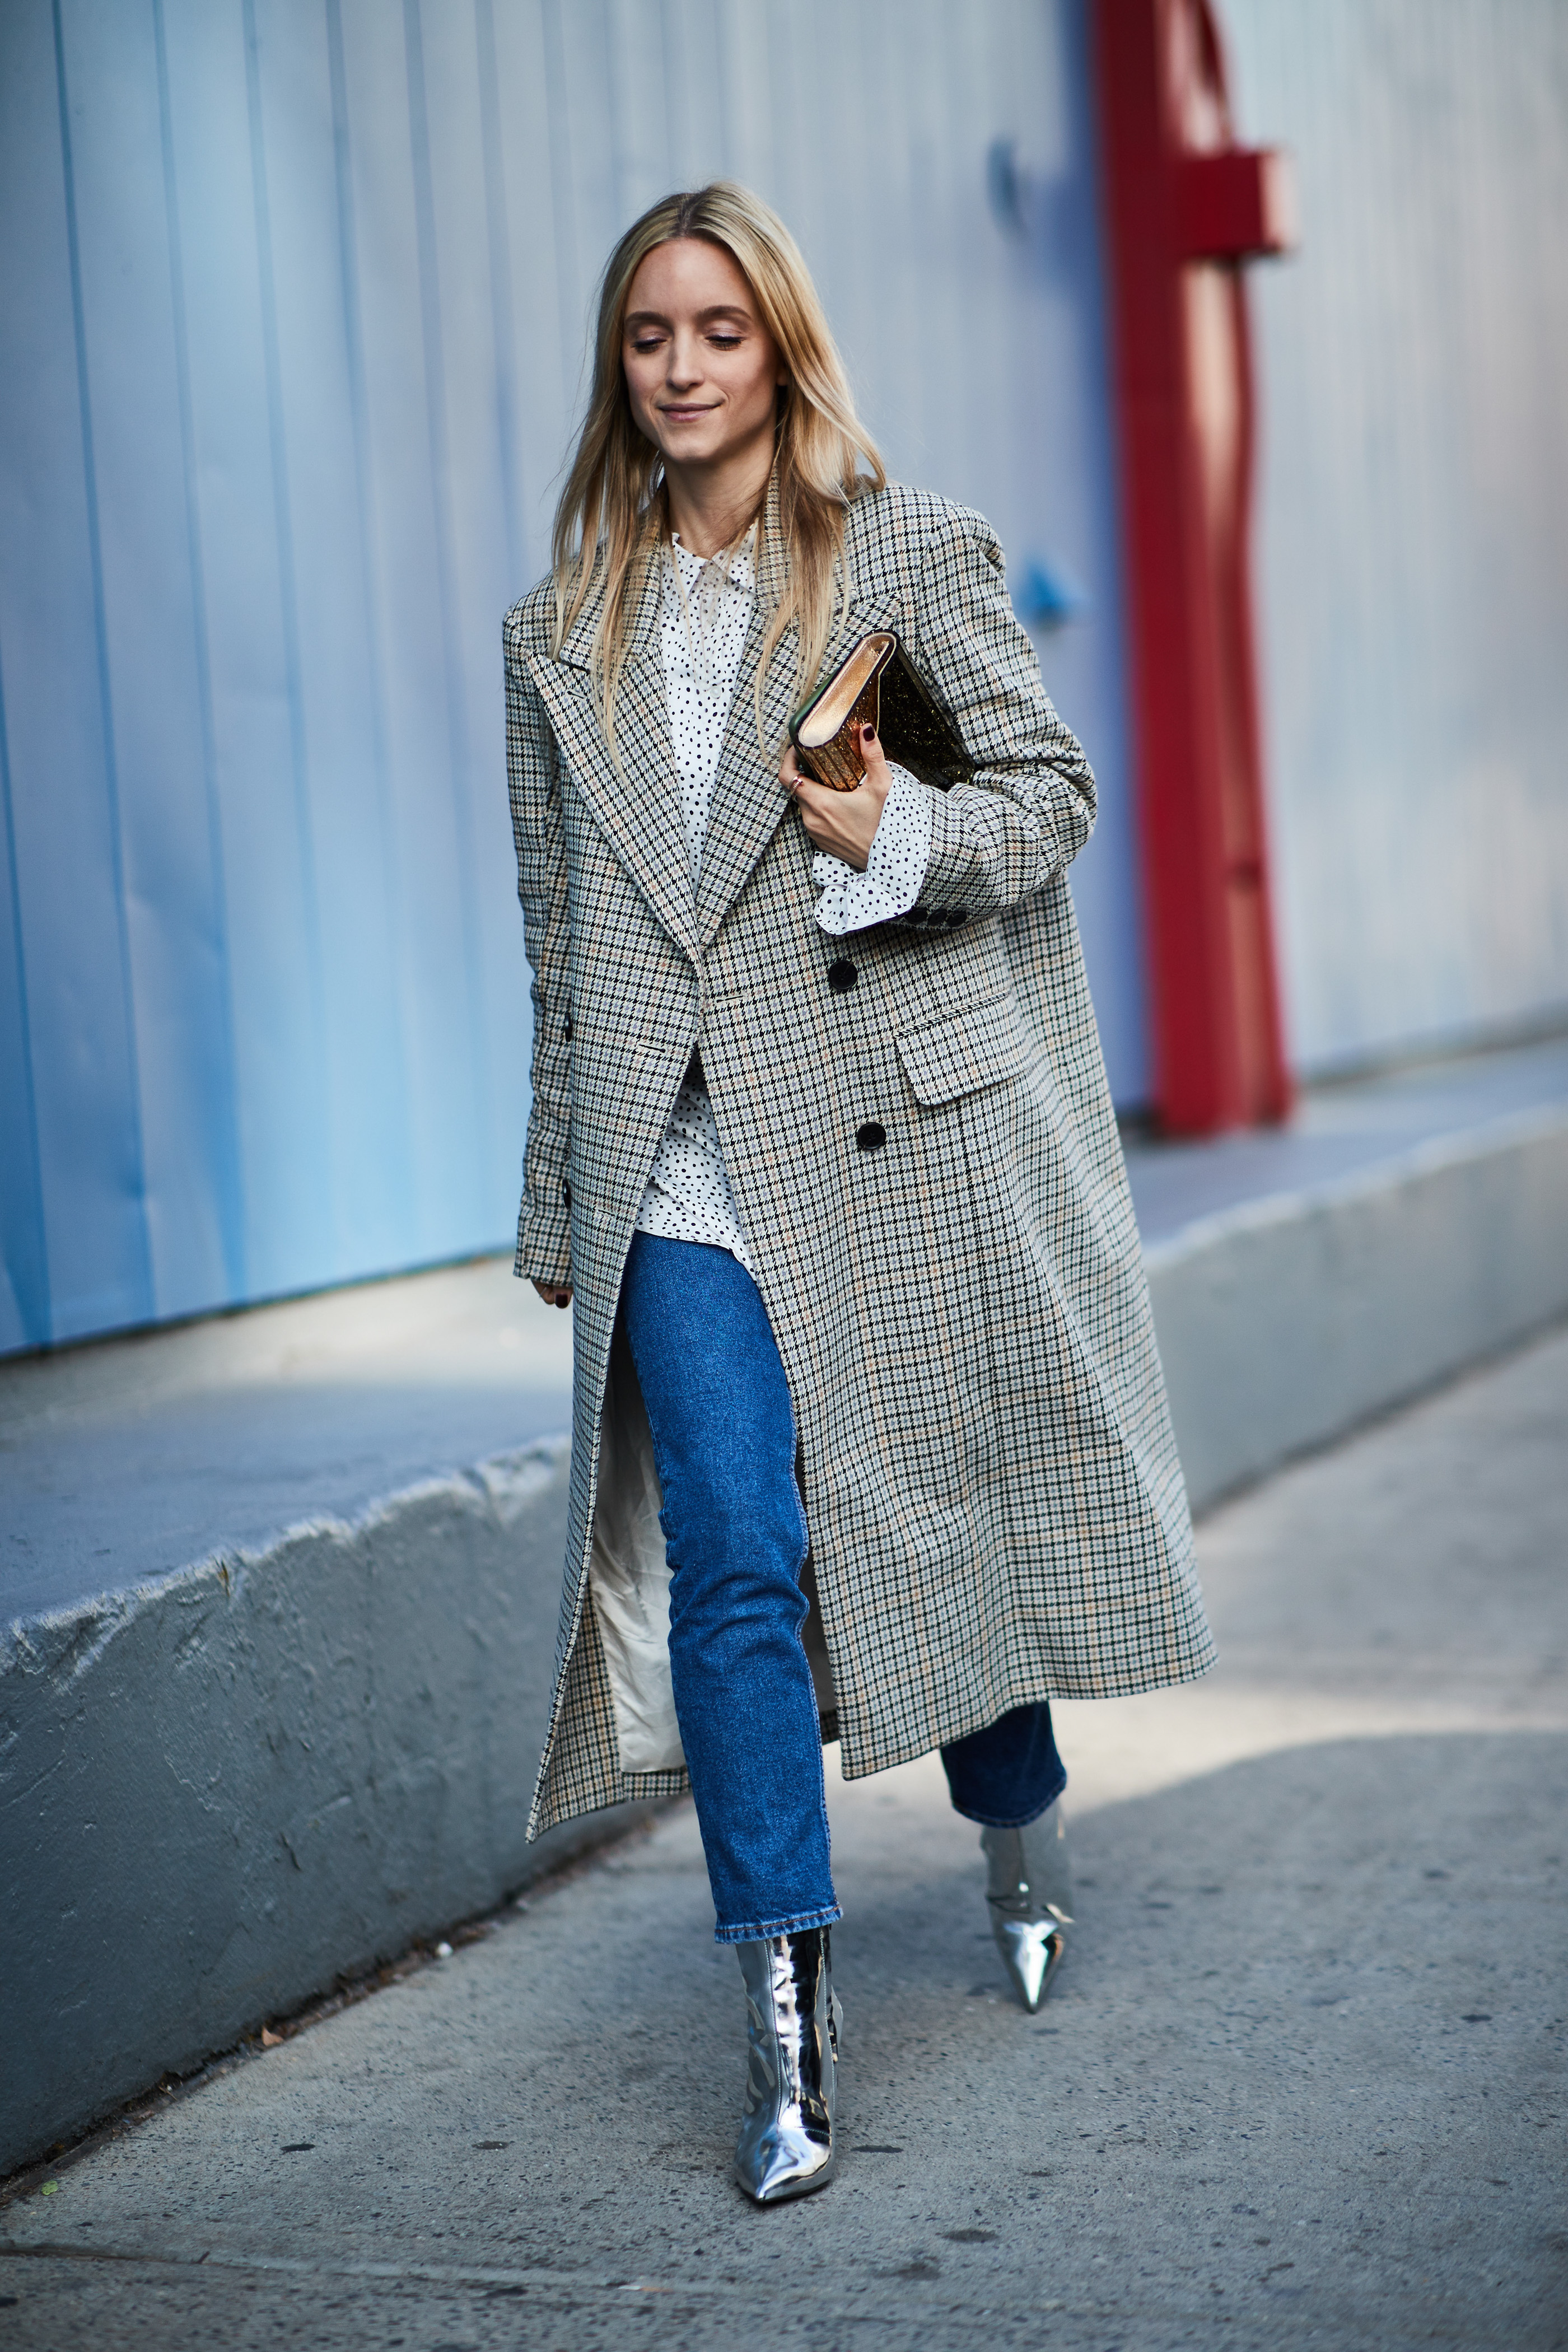 New York Fashion Week A W 18 19 The Style Stalker Street Style